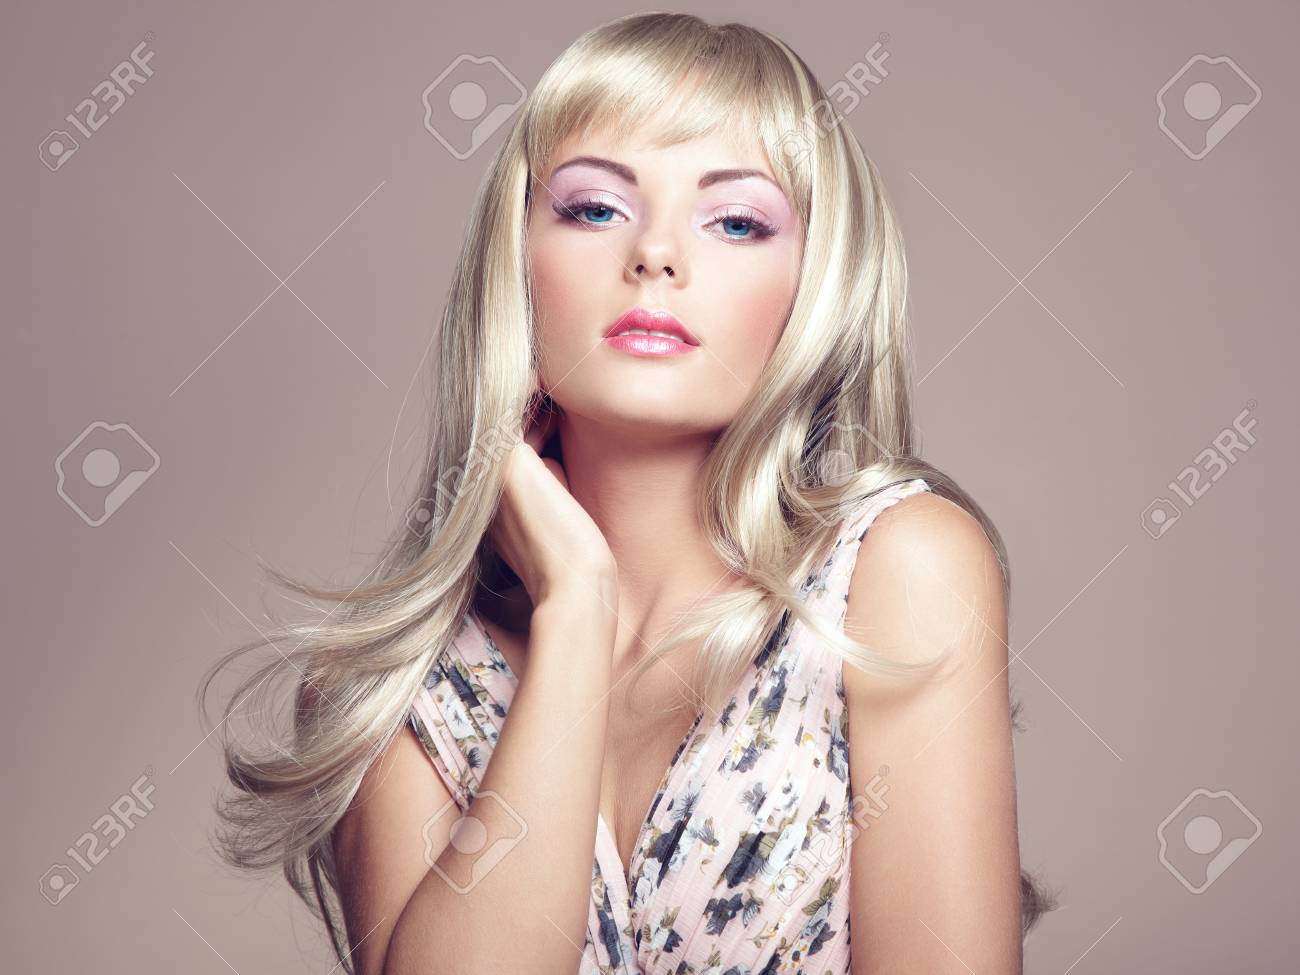 Photo of beautiful woman with magnificent hair Stock Photo - 20619477